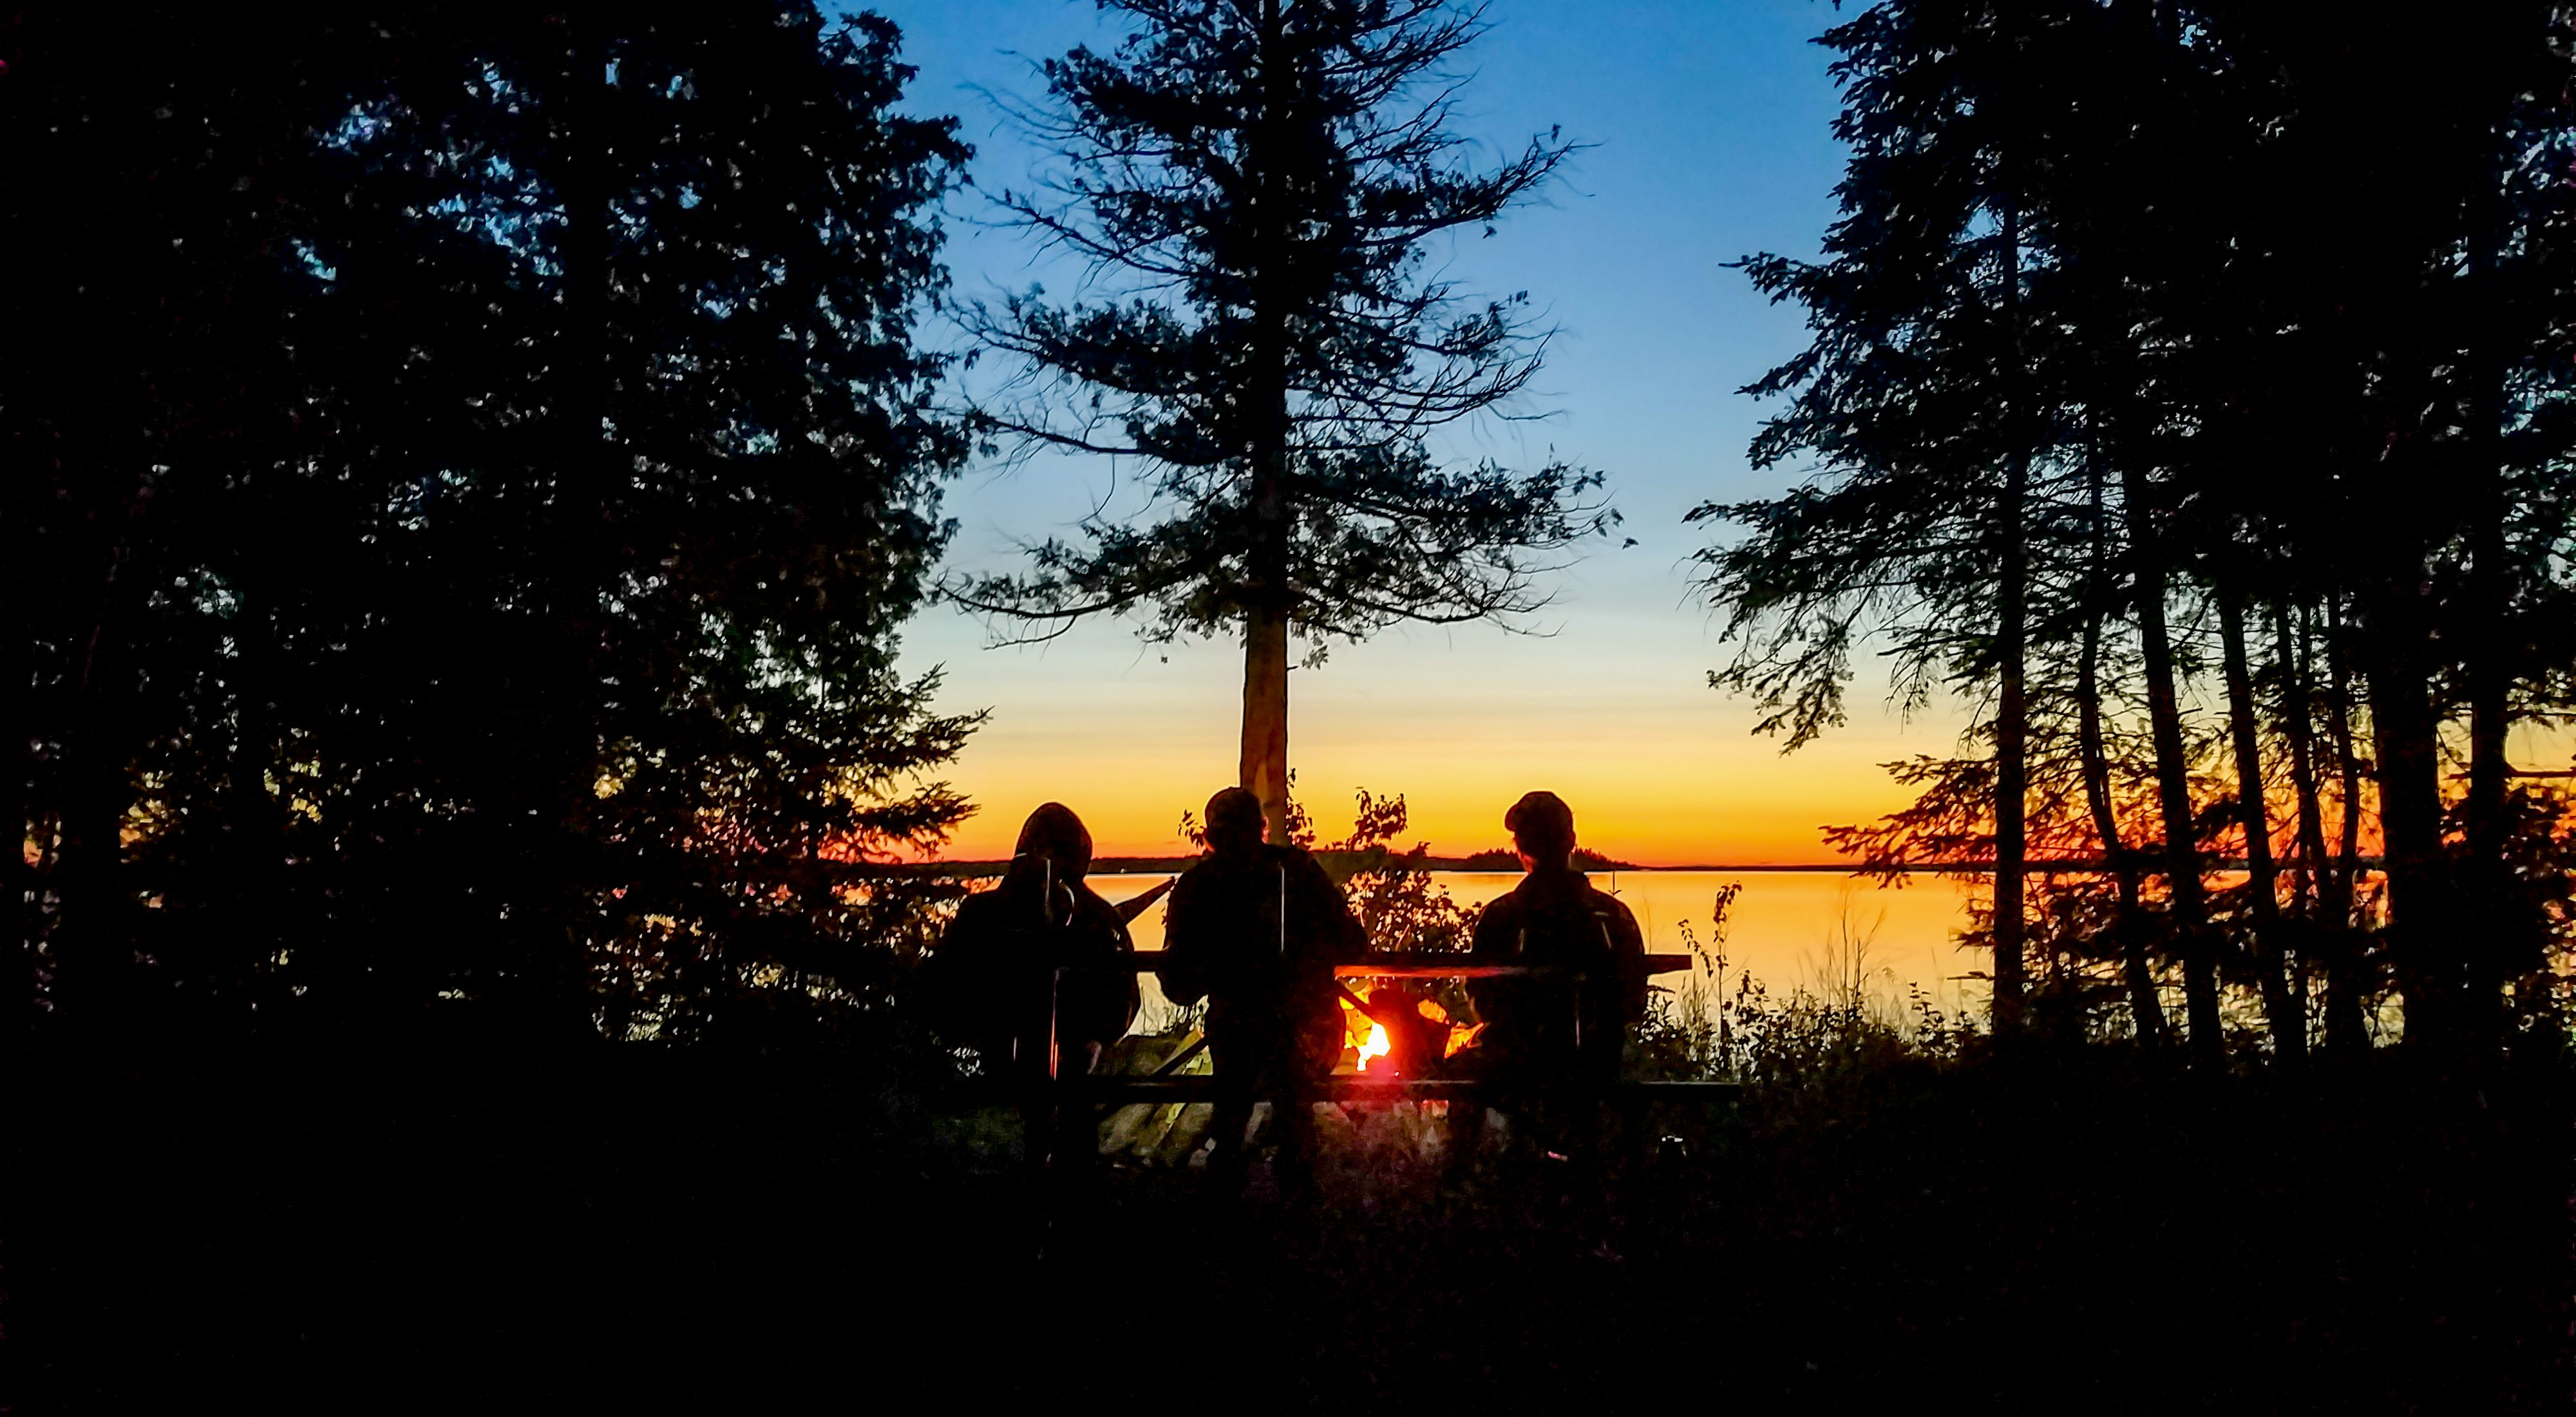 (ALL RIGHTS GRANTED TNC, CREDIT MANDATORY) TNC Roving Crew watching the sunset on Drummond Island.   Photo Credit: © Kim Steinberger/The Nature Conservancy